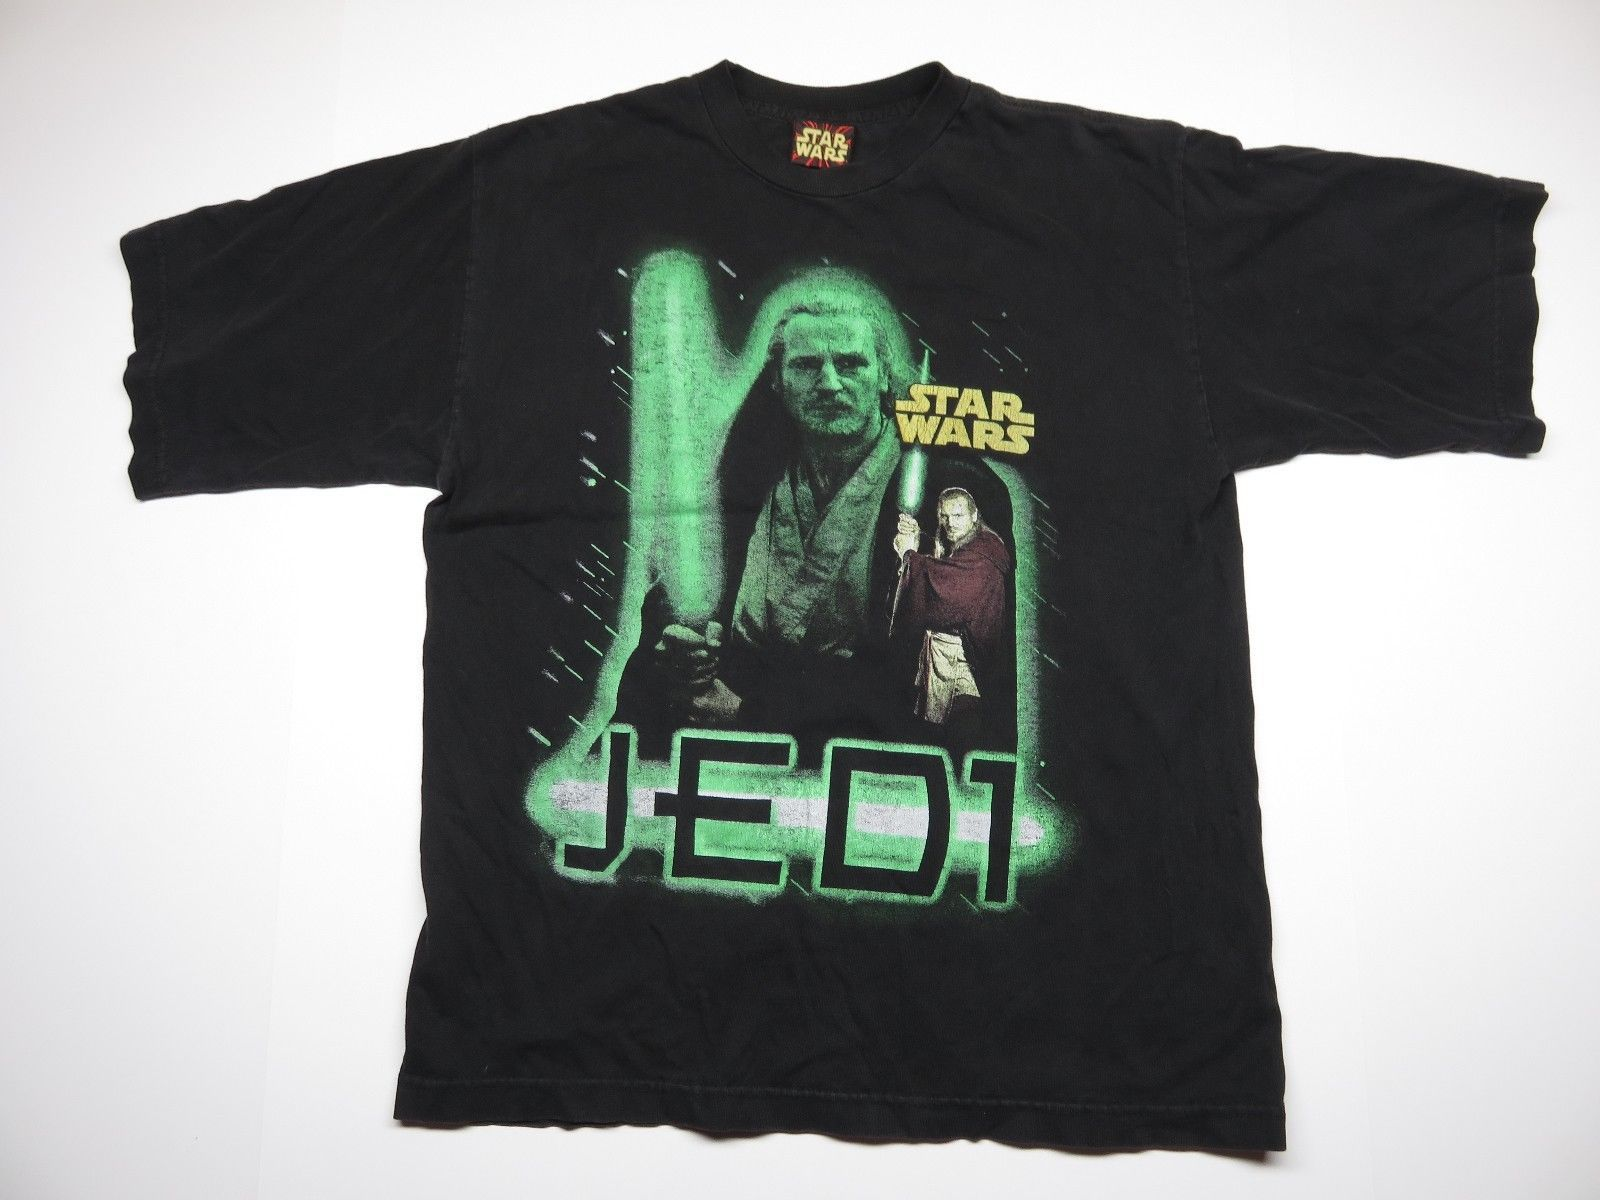 90s Retro STAR WARS QUI-GON JINN & DARTH MAUL JEDI SITH LORD T-SHIRT BLACK